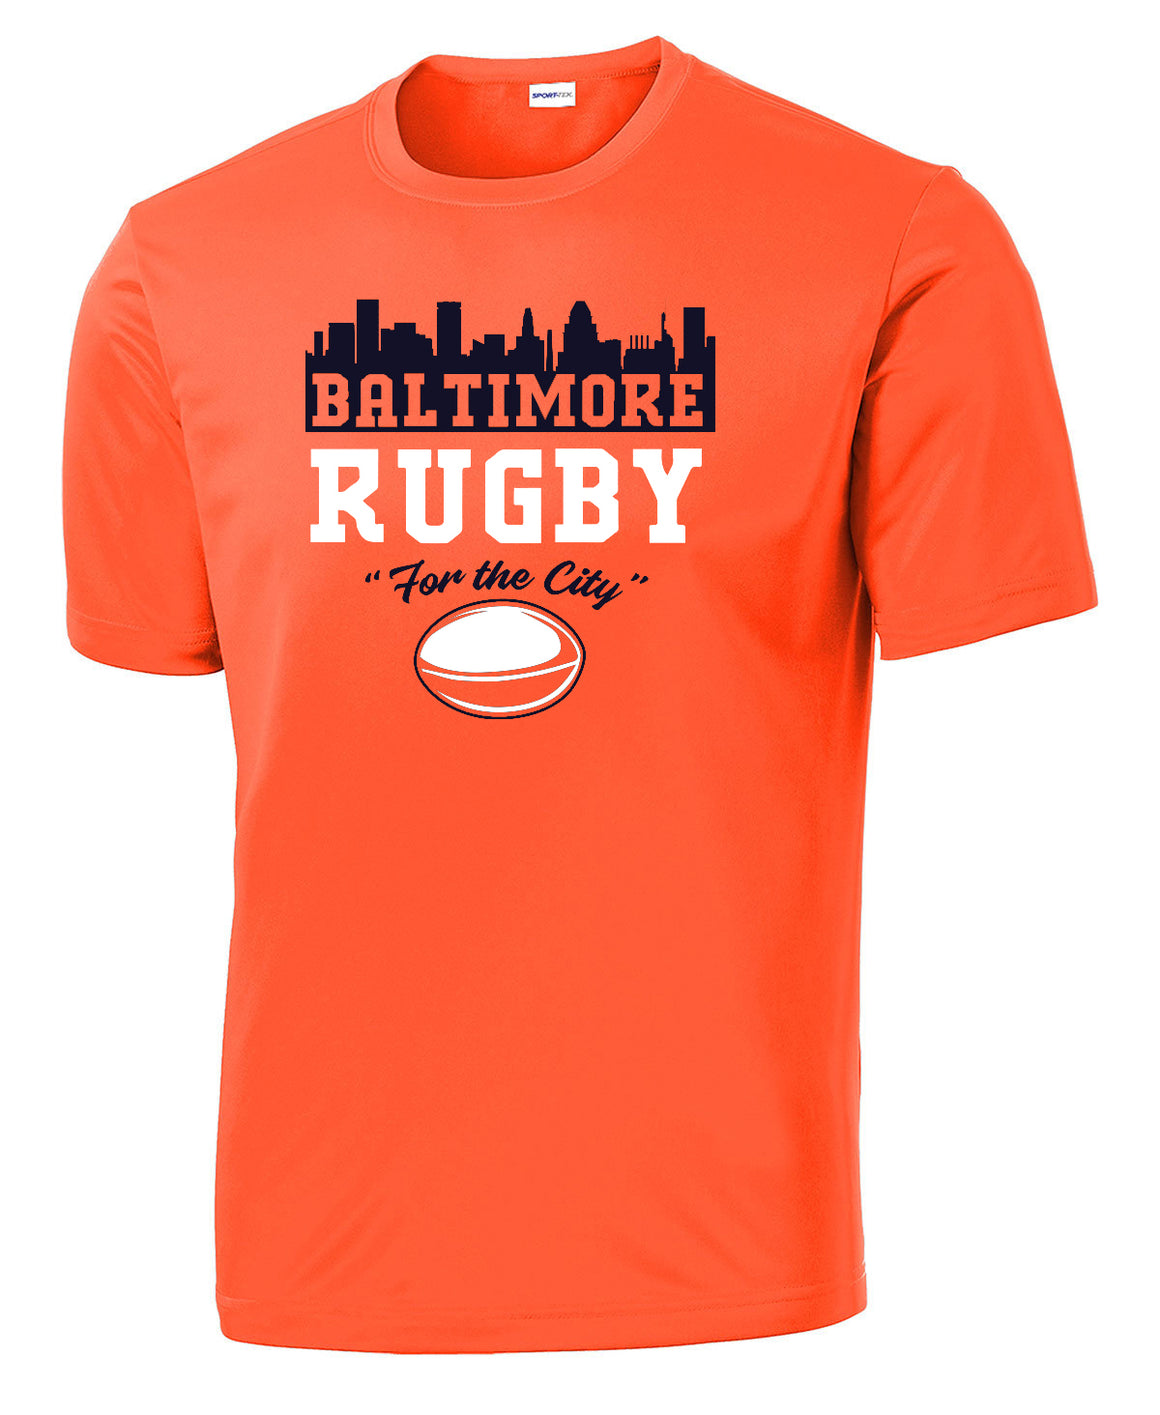 Baltimore Rugby T- Shirt - Bright Orange